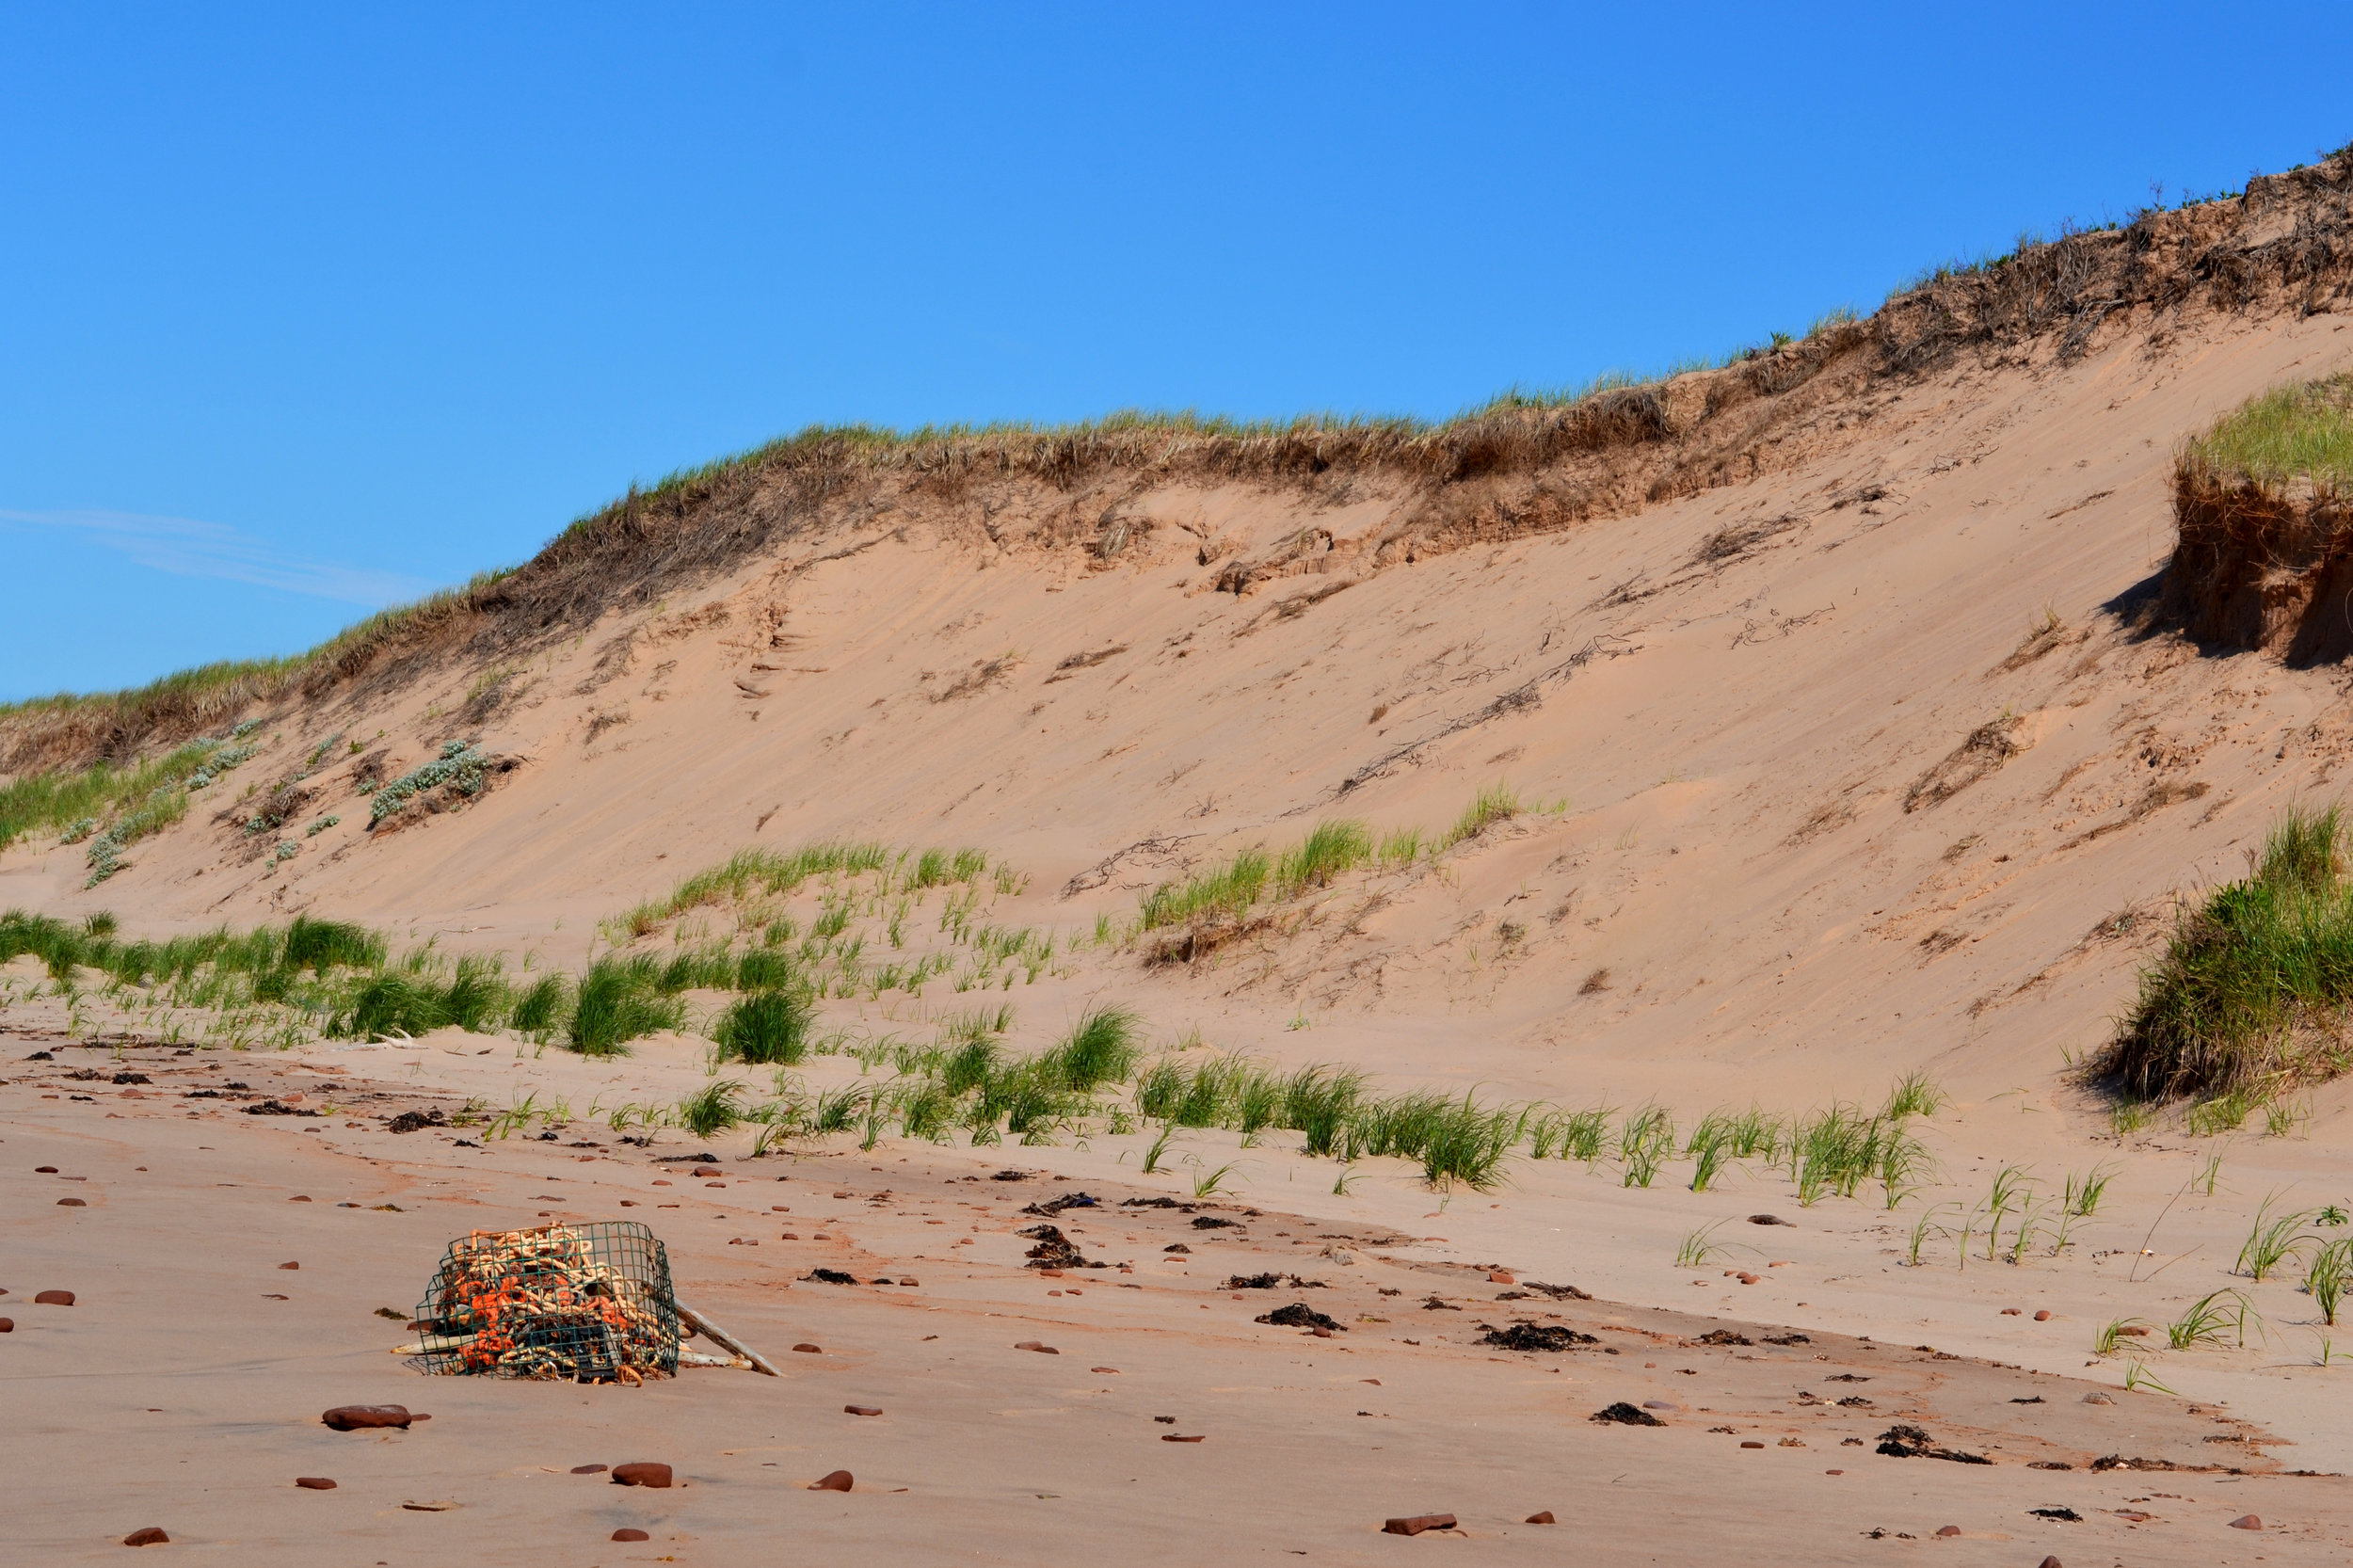 parabolic-dunes-and-fishing-rope-pile.jpg